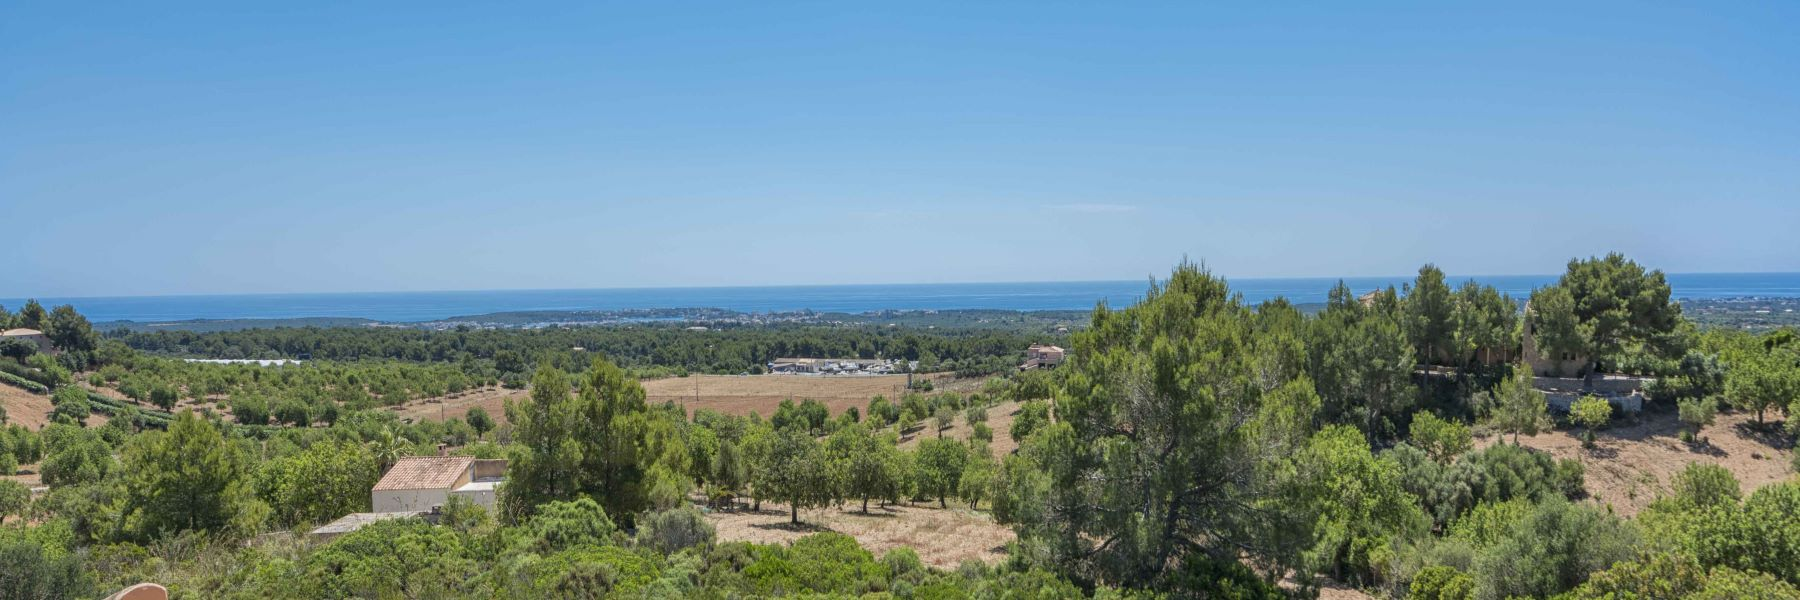 Equipment and accessories Finca Portocolom for 6 persons on Majorca